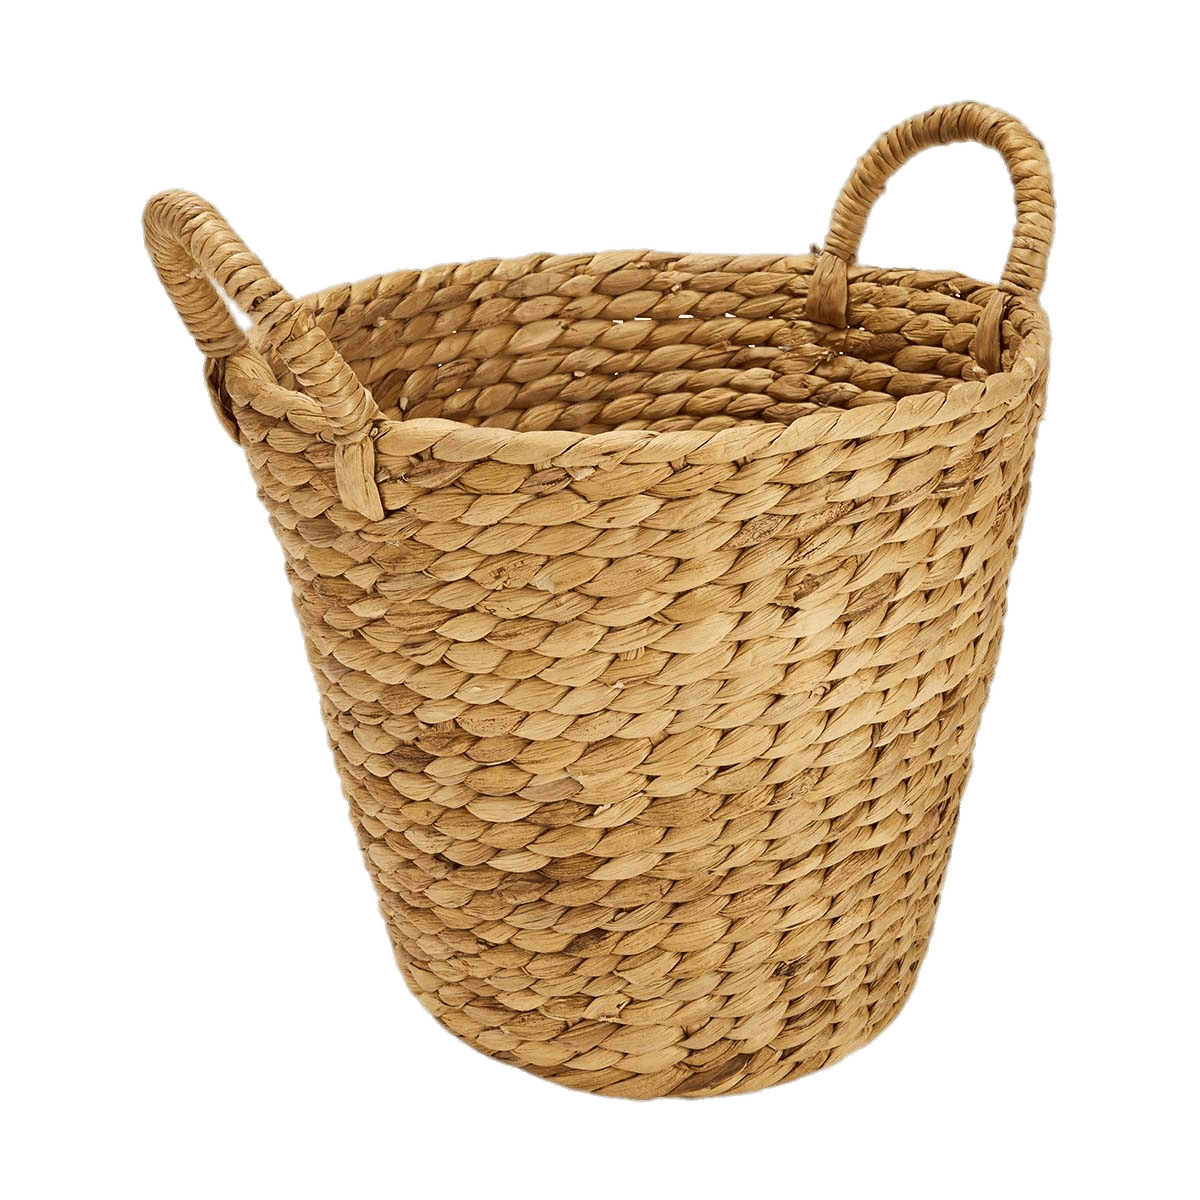 Round basket with handles. Laundry clipart laundry hamper